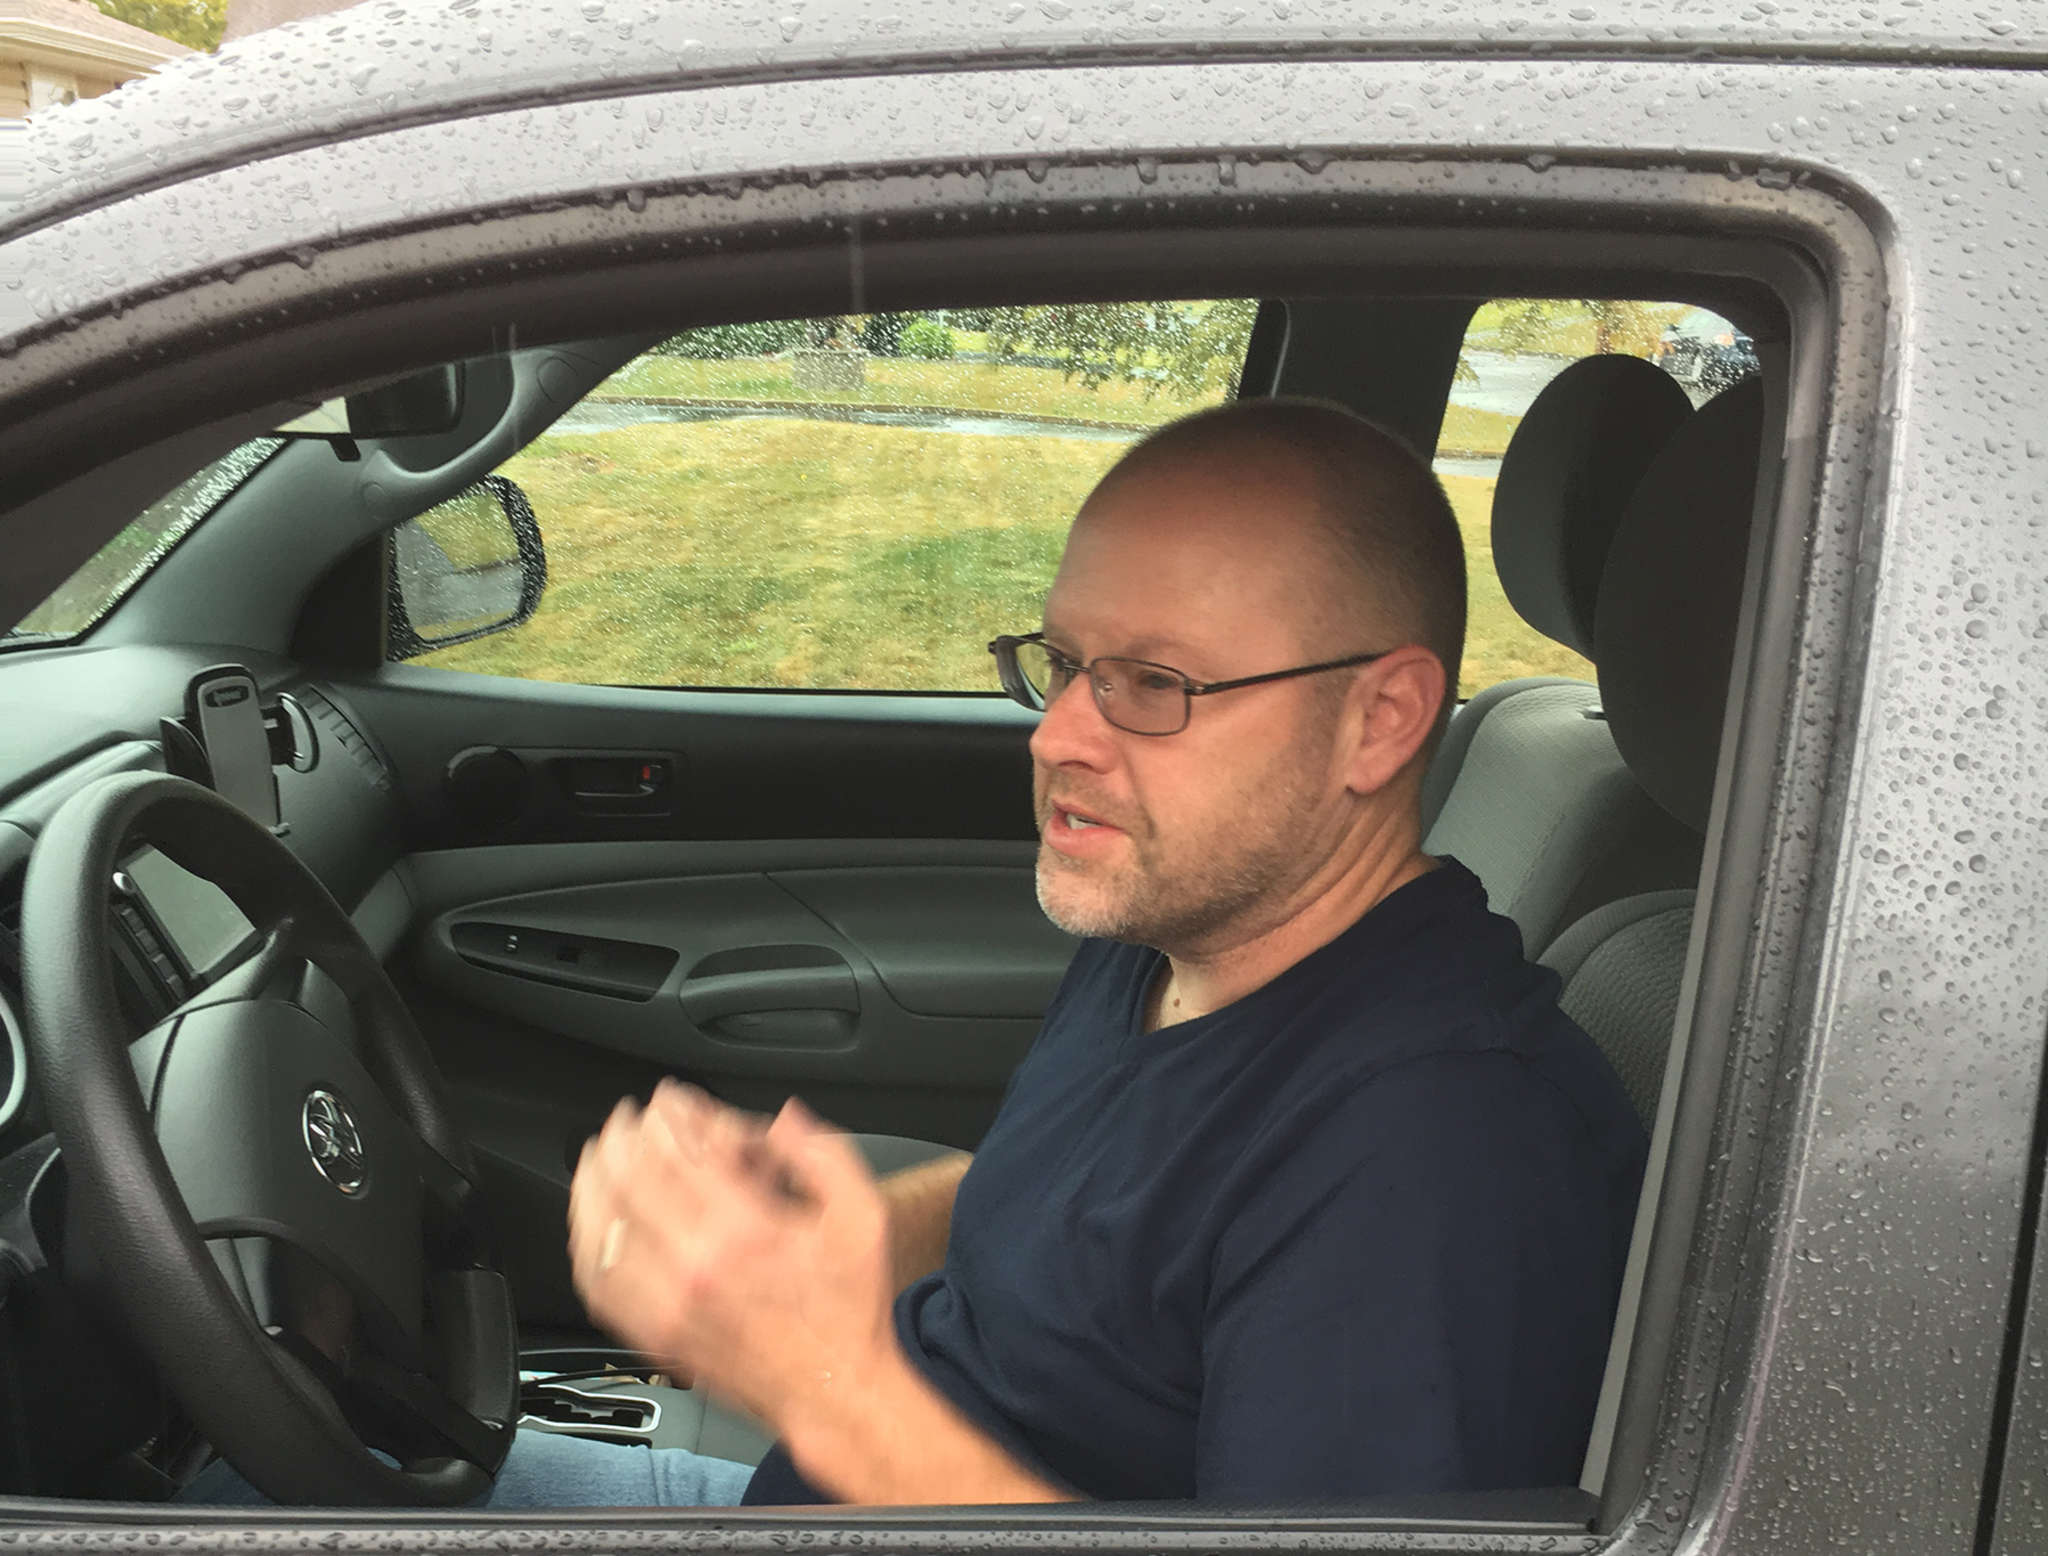 Shawn Gill lost his driver´s license in a case of stolen identity. He is now suing the Police Department for lost wages while he was unable to drive for Uber and Lyft.